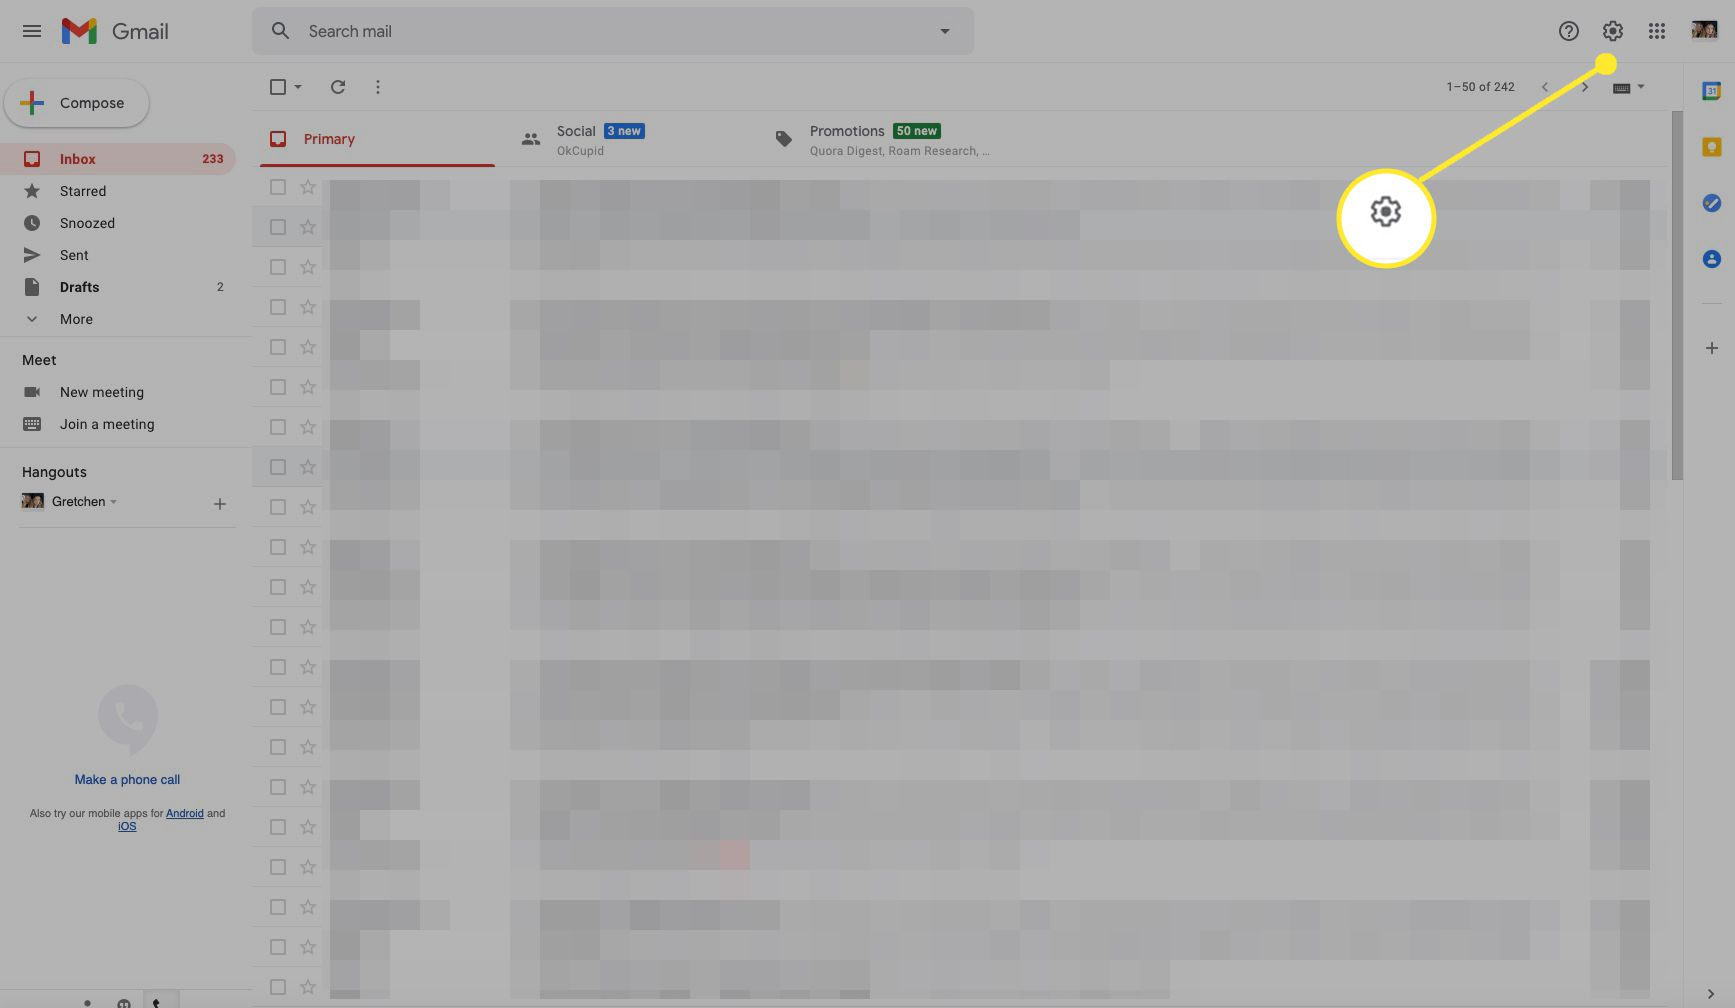 Gmail inbox screen with Settings highlighted